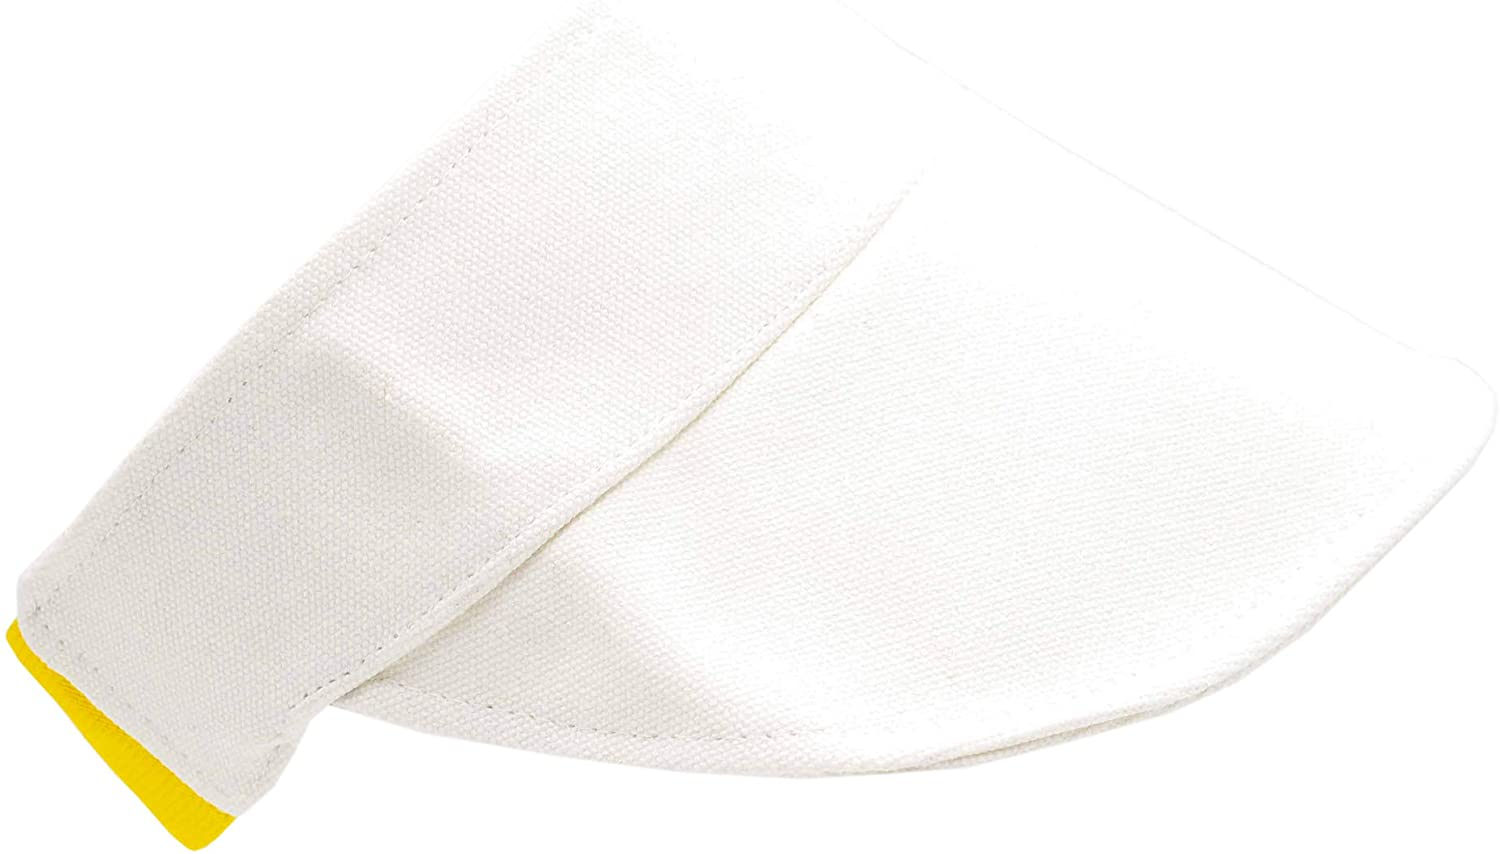 Summer Sunhat Beach Visor - Soft Cotton Sun Protector - Perfect Beach Gift White